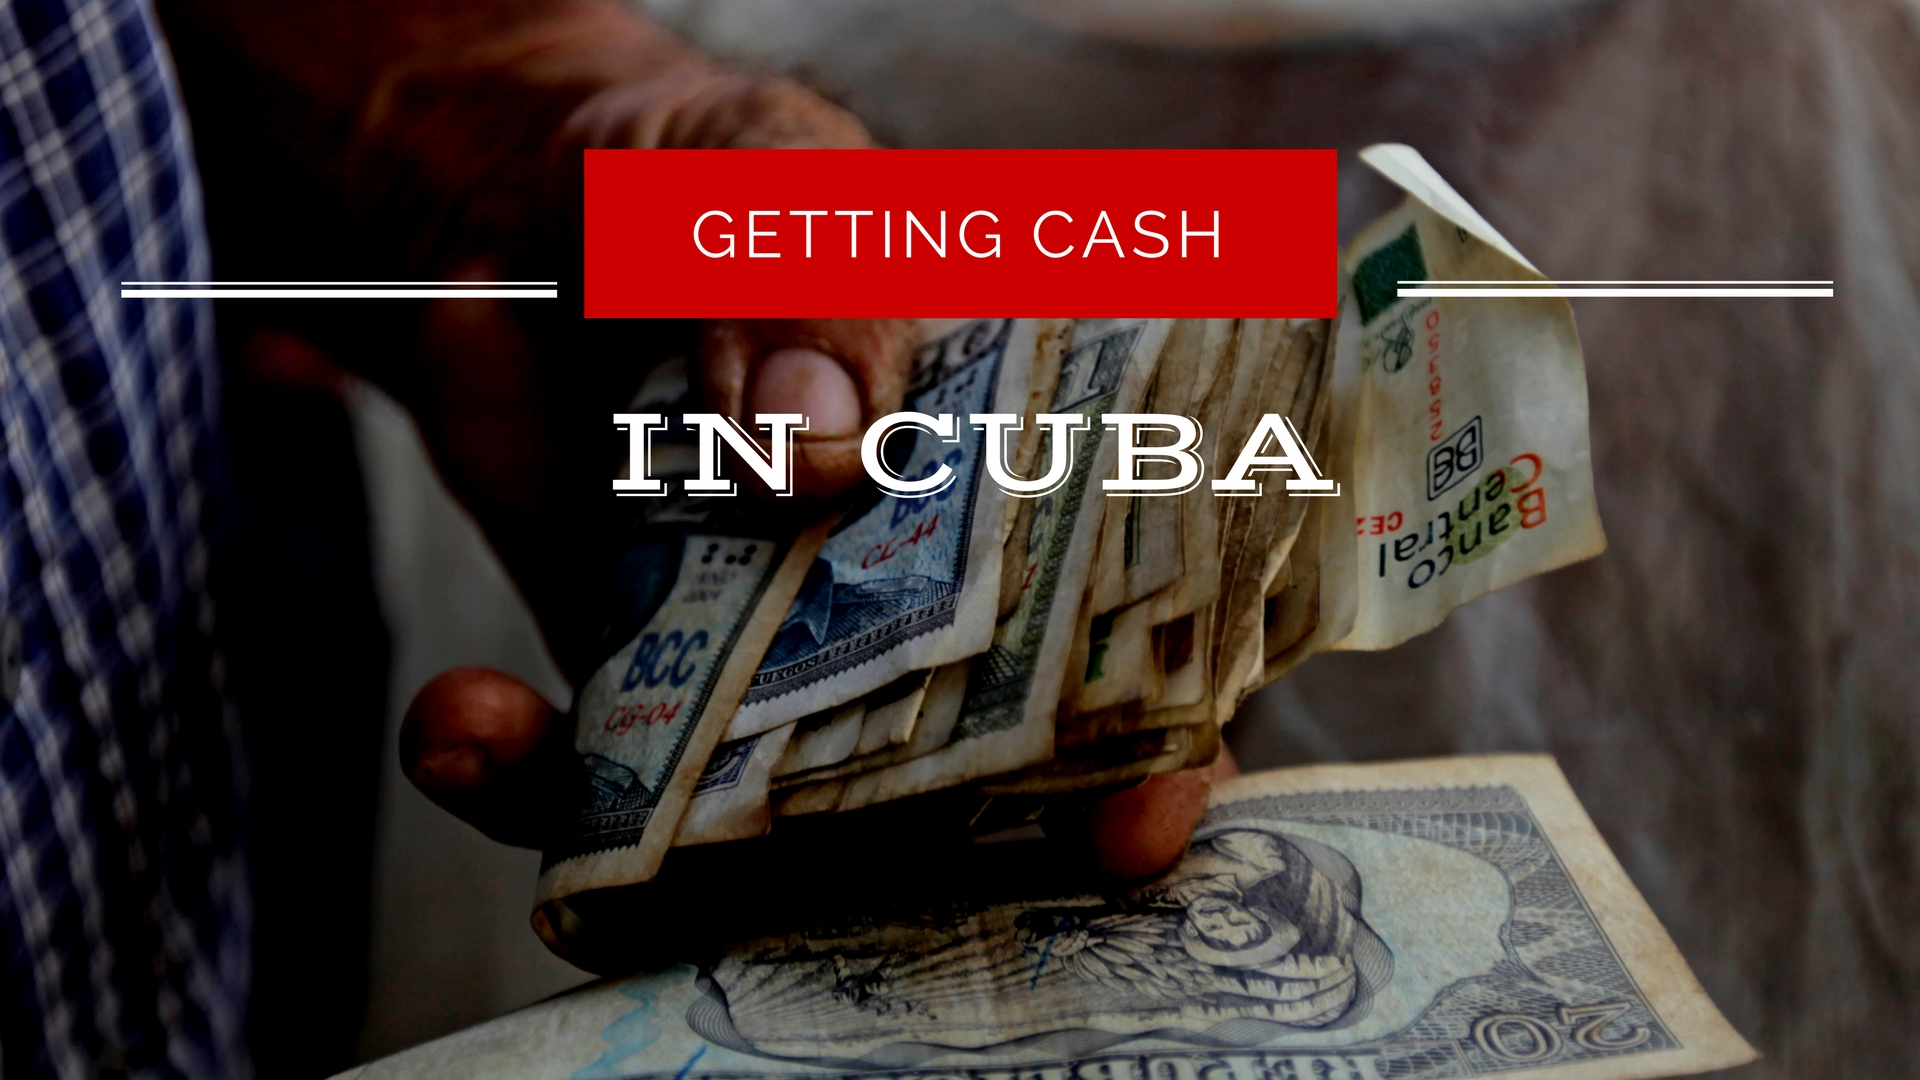 Getting Cash In Cuba The Art Of Managing Your Money Wiring To Denmark